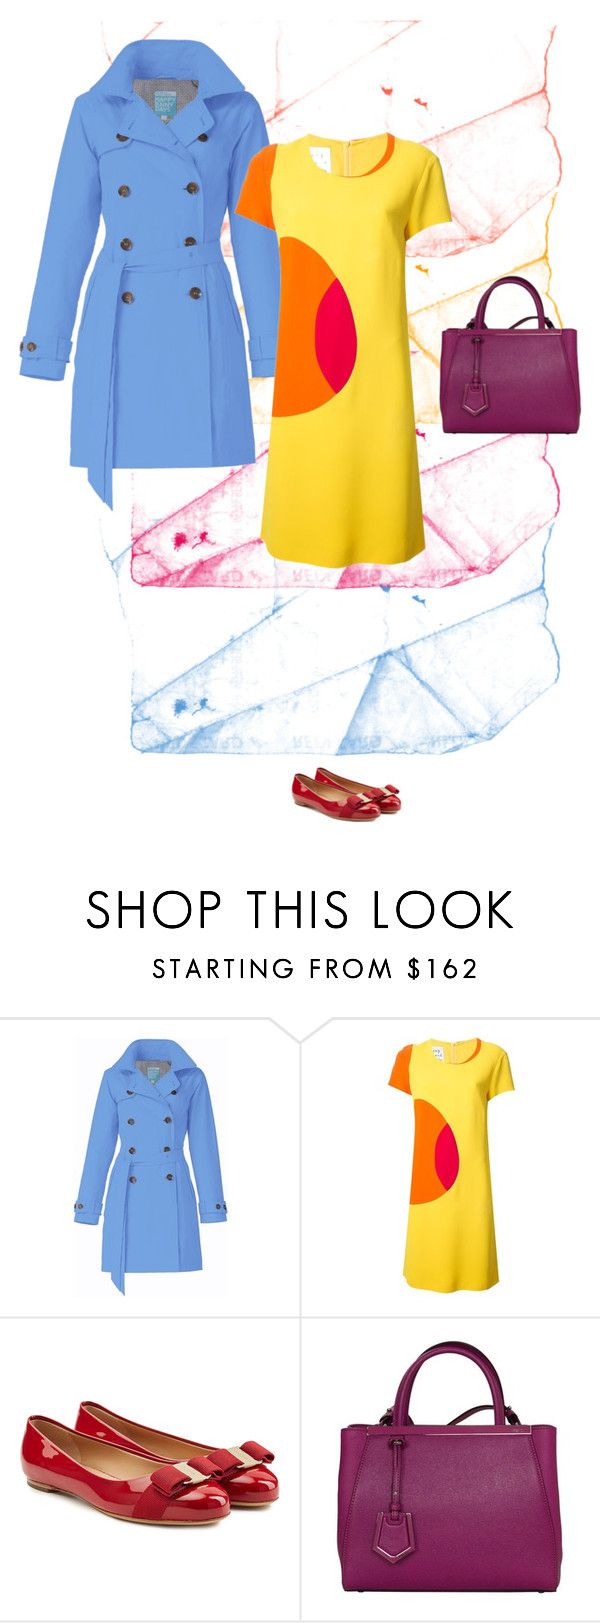 """Colour"" by blueeyed-dreamer ❤ liked on Polyvore featuring Moschino, Salvatore Ferragamo, Fendi, women's clothing, women, female, woman, misses and juniors"